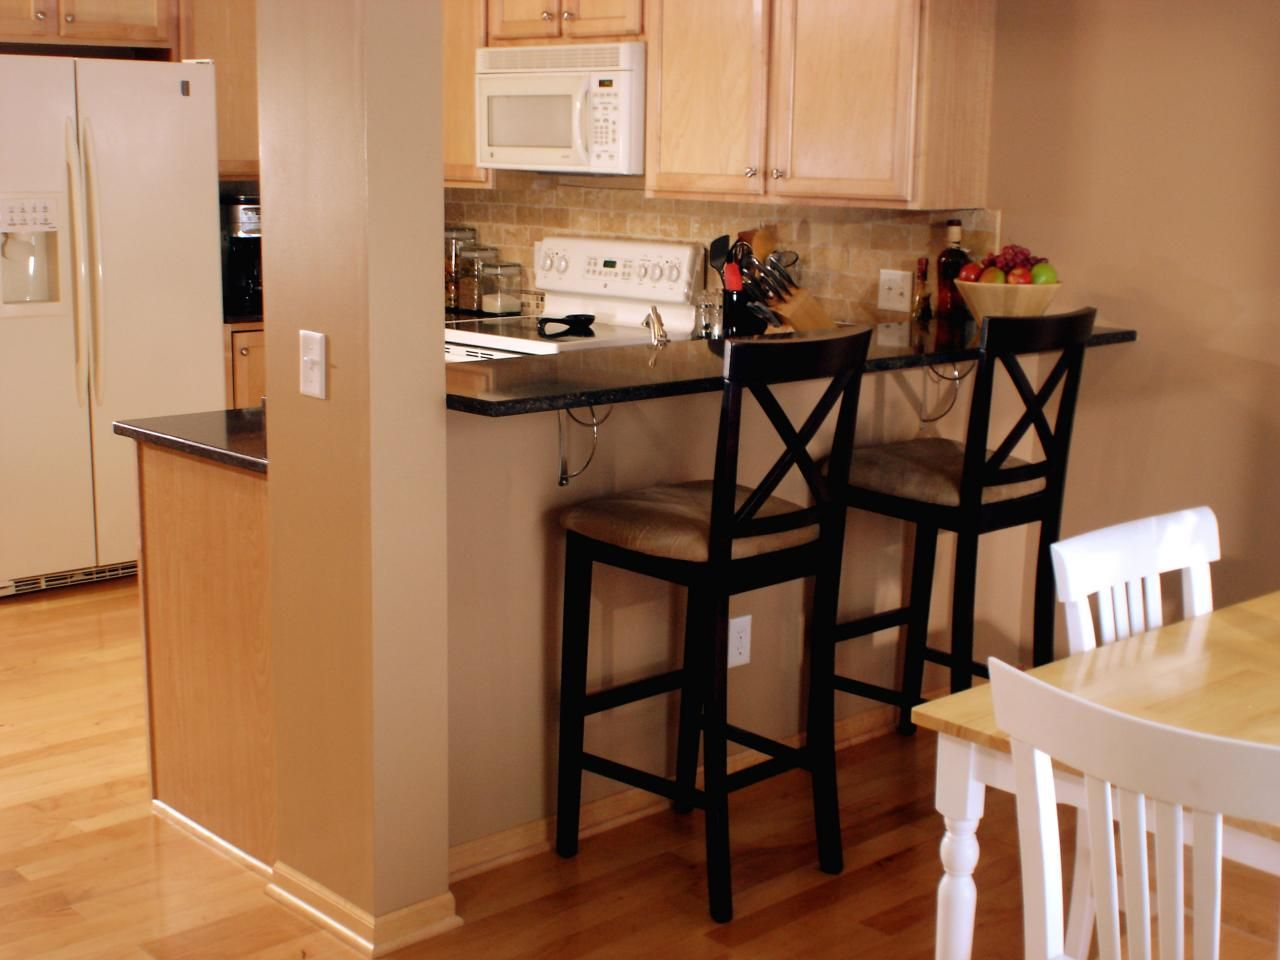 Follow These Steps From DIYNetwork To Build A Raised Bar In Your Kitchen